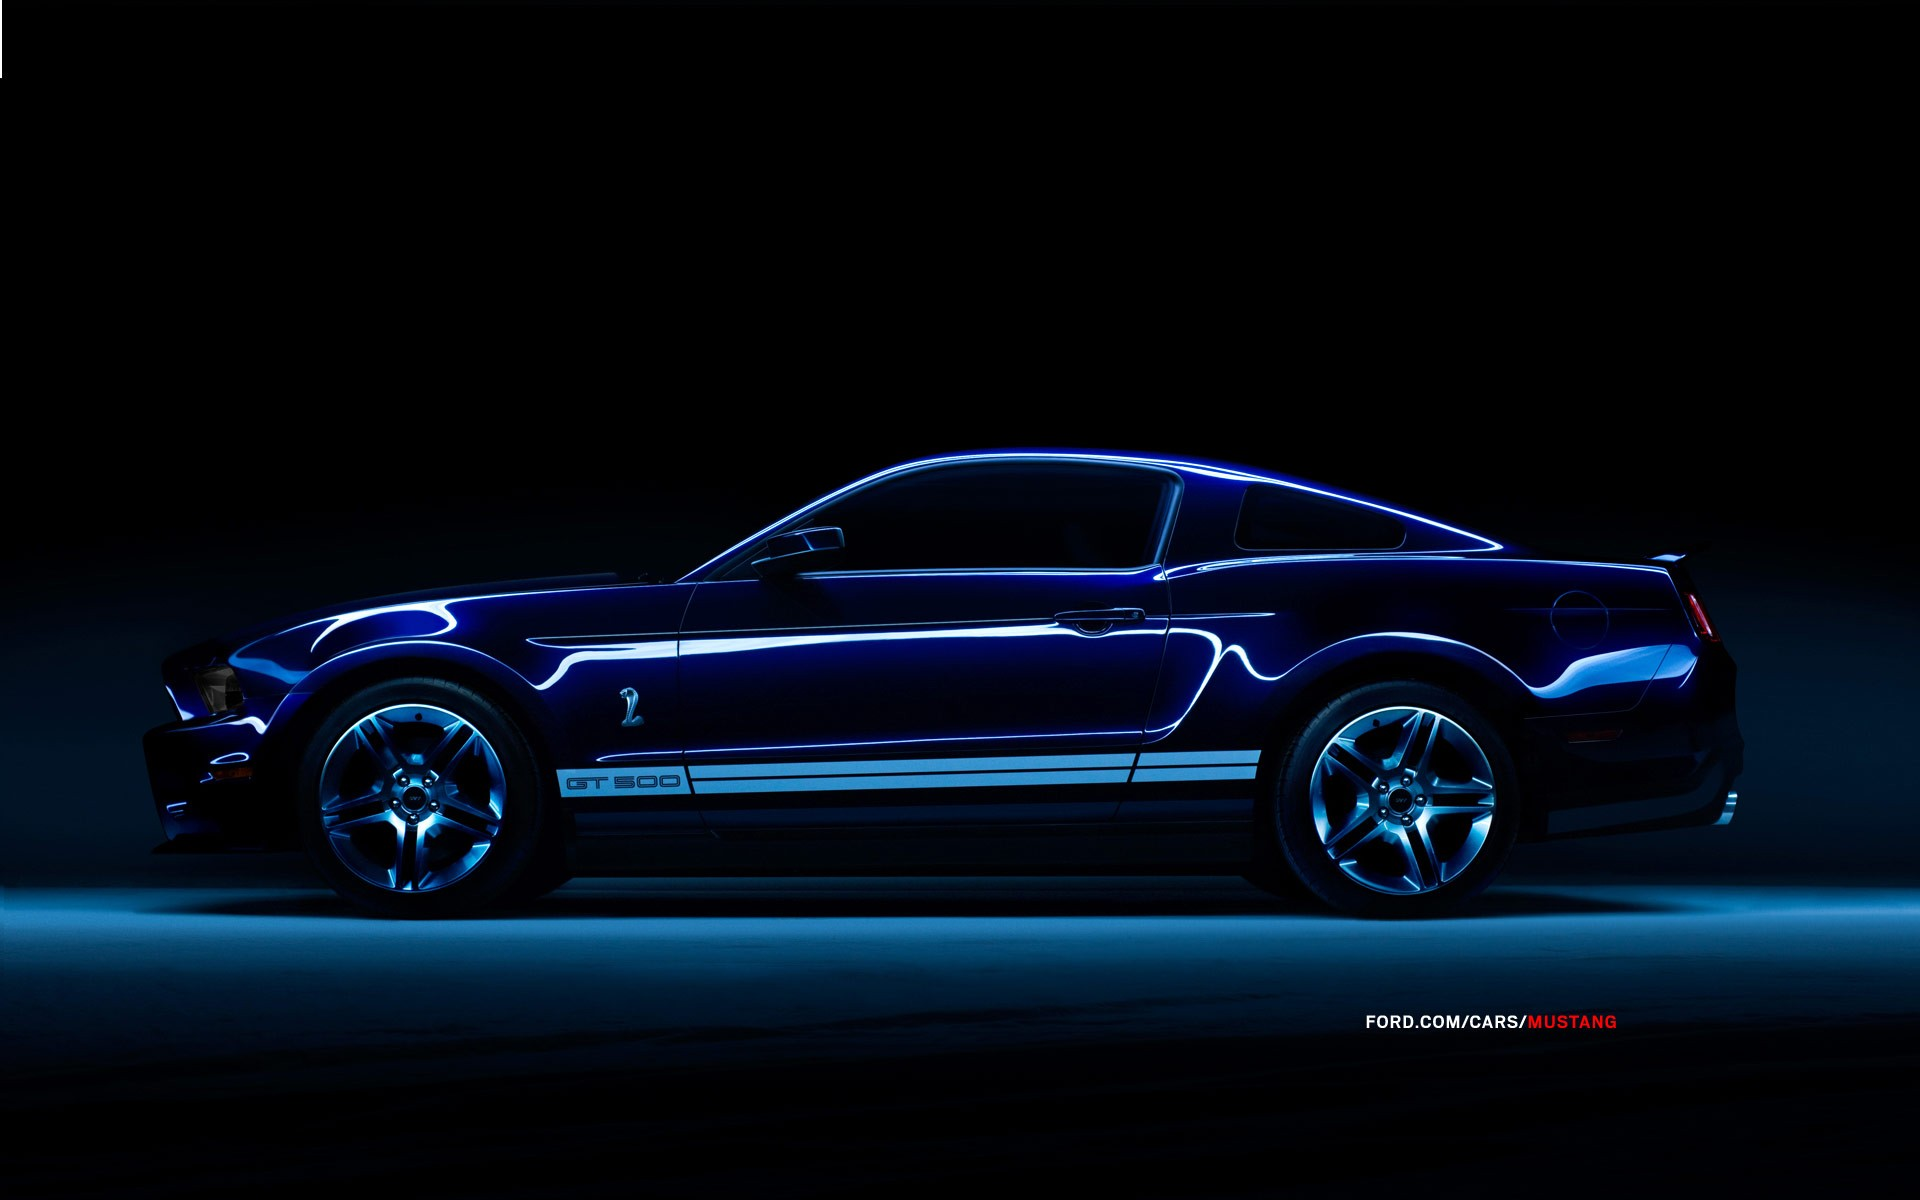 Ford Mustang Shelby GT500 Wallpapers, Hintergründe   1920x1200   ID ...